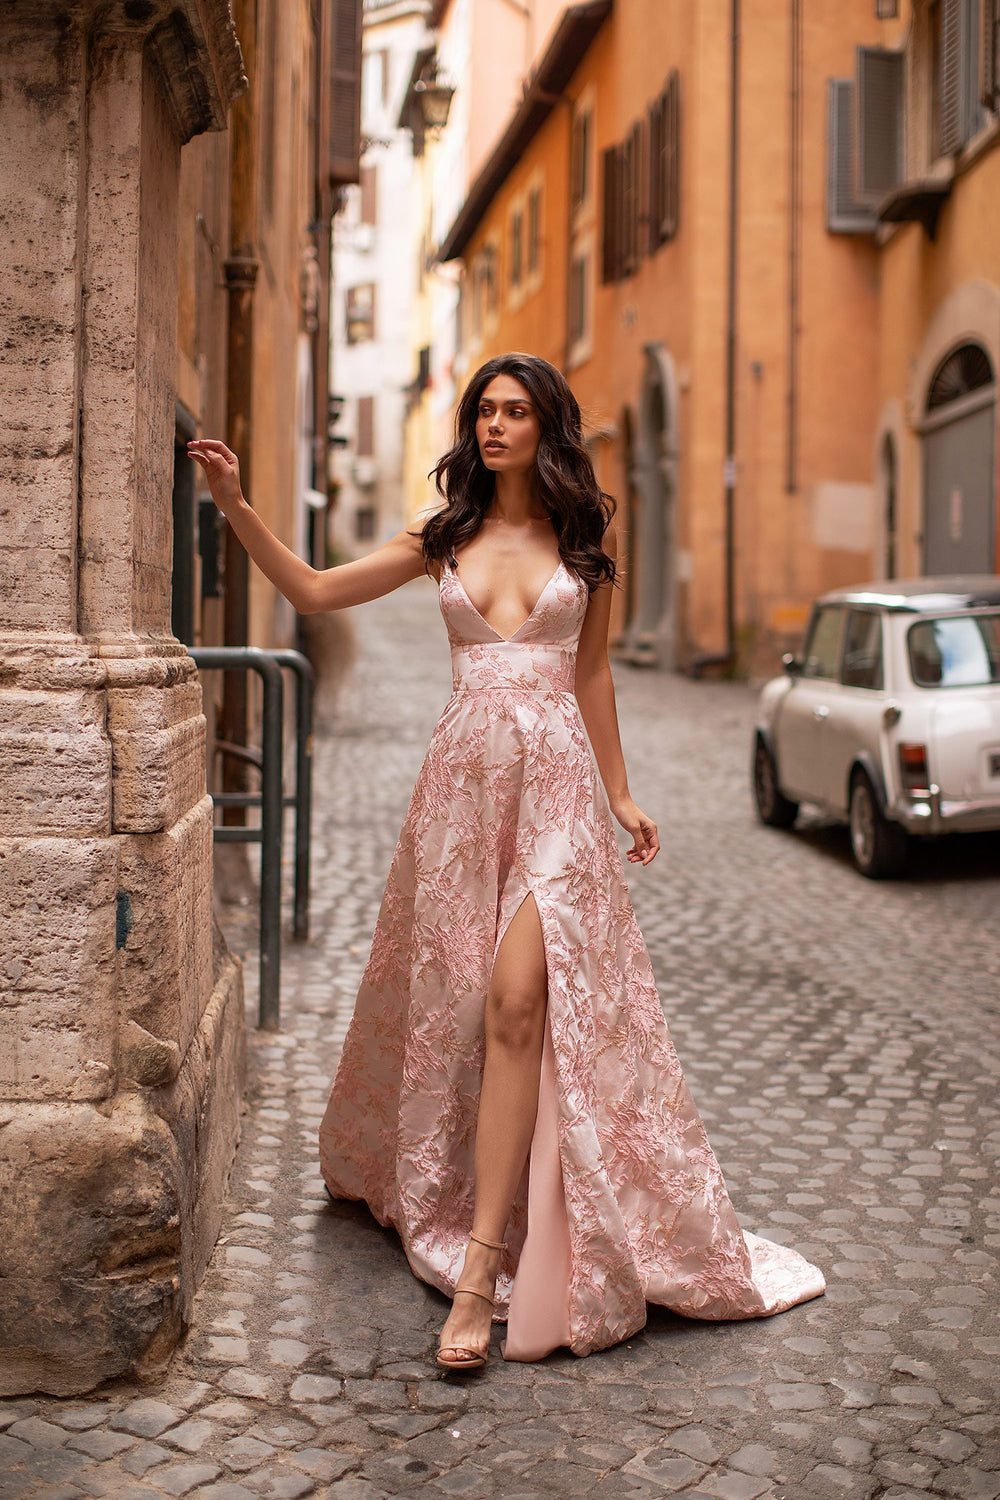 Marcelina - White, Pink & Gold Gown with Plunge Neck & Lace-Up Back